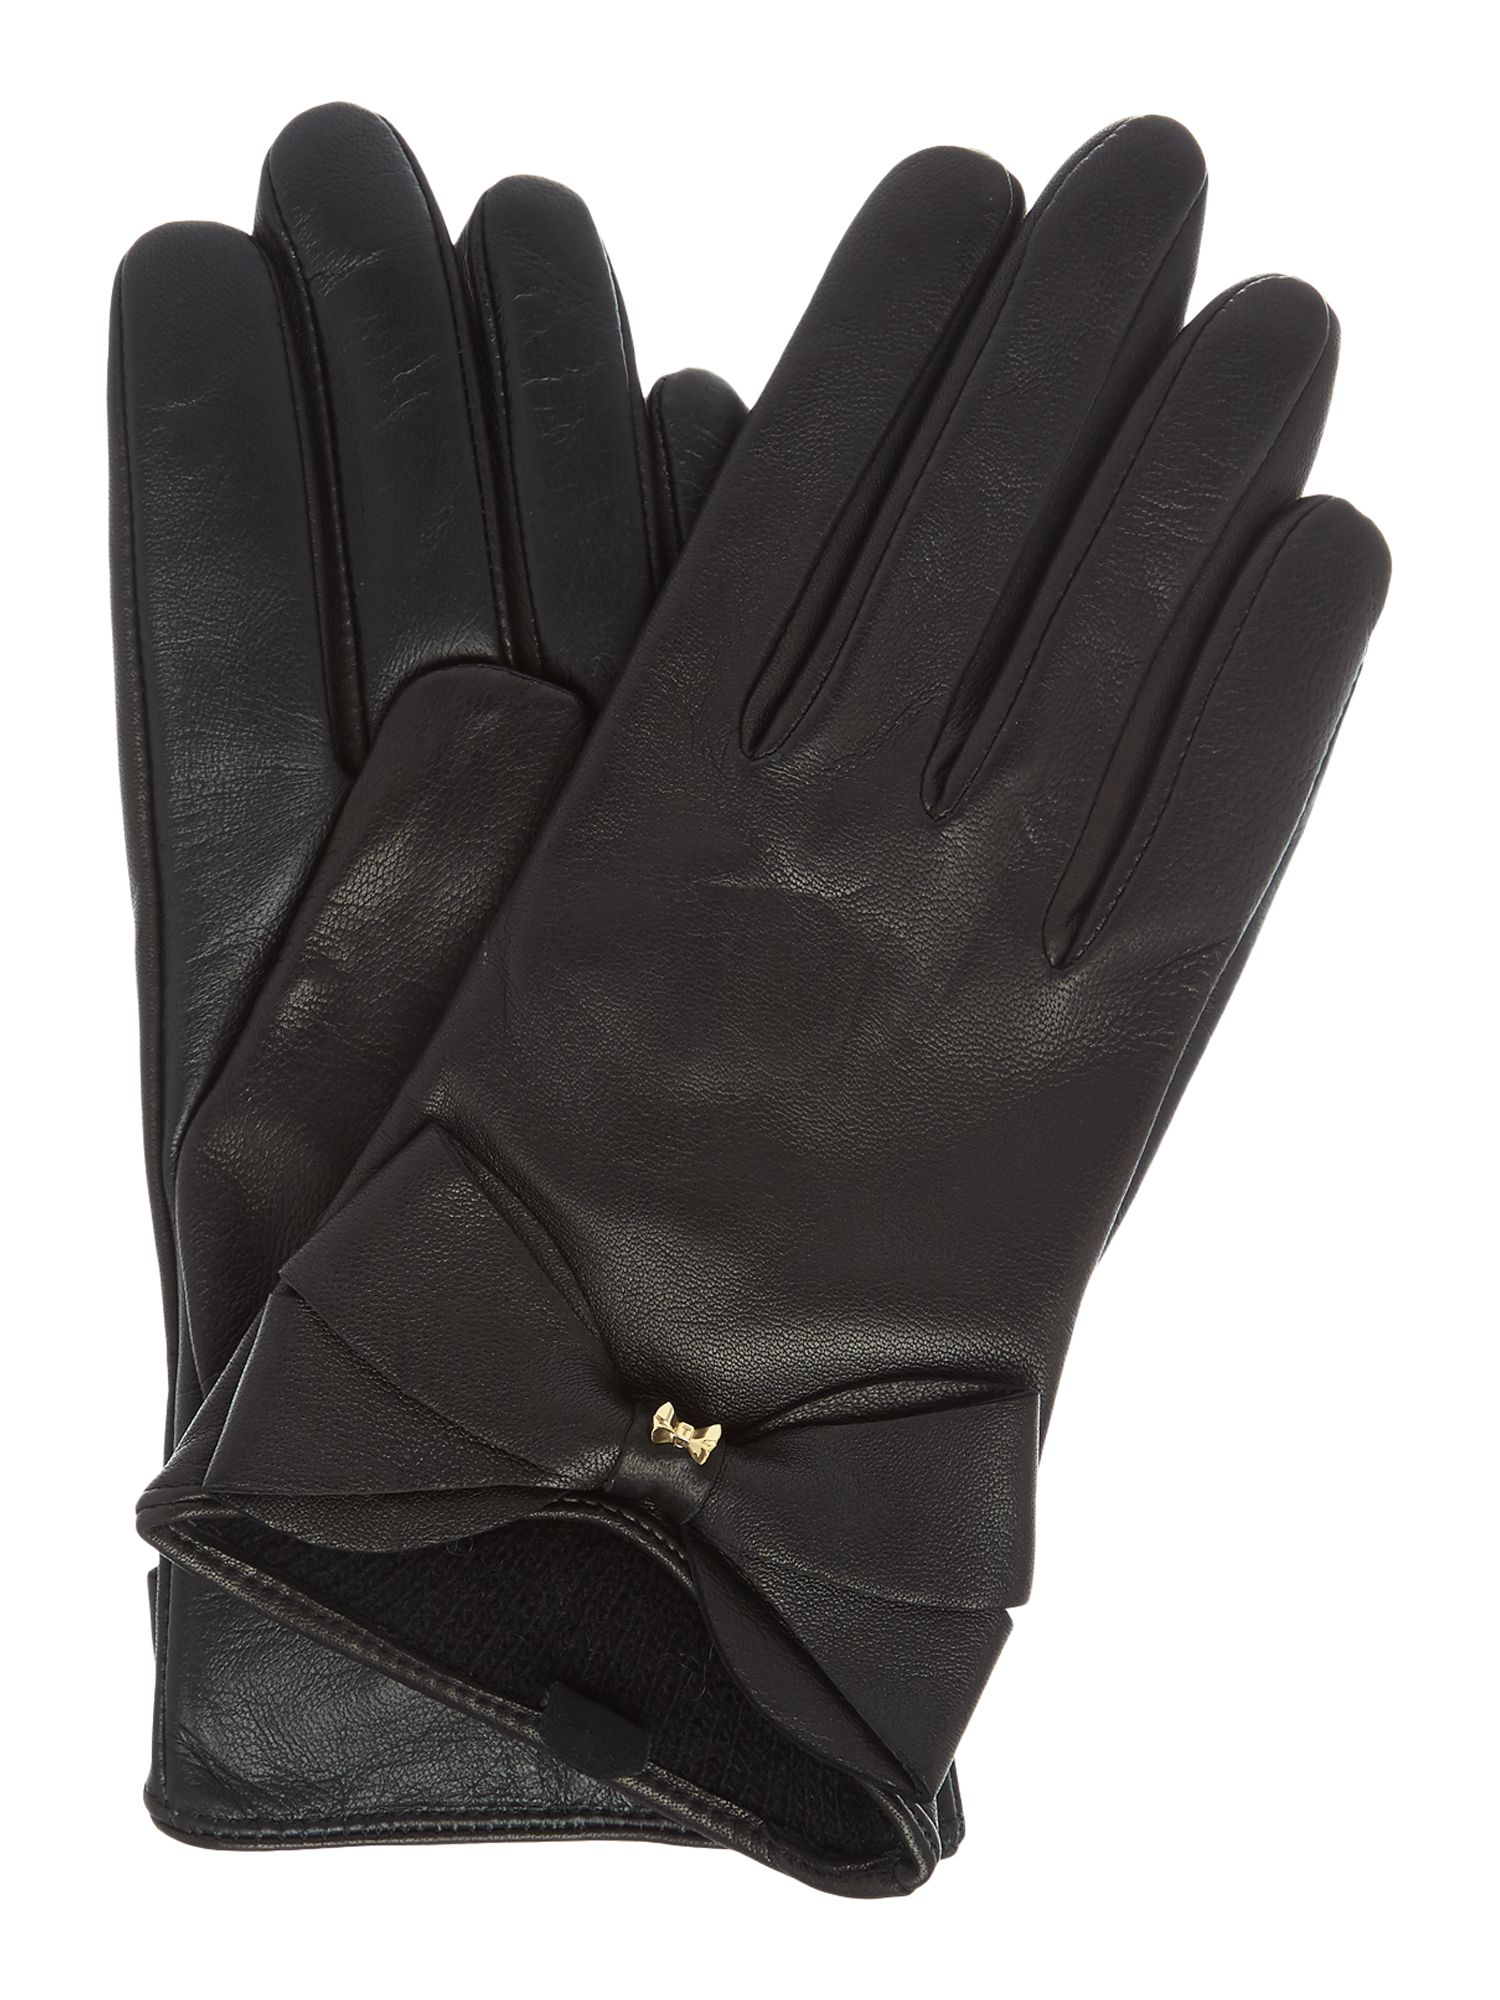 Ladies leather gloves large - Vintage Style Gloves Ted Baker Lynna Large Bow Leather Glove 75 00 At Vintagedancer Com